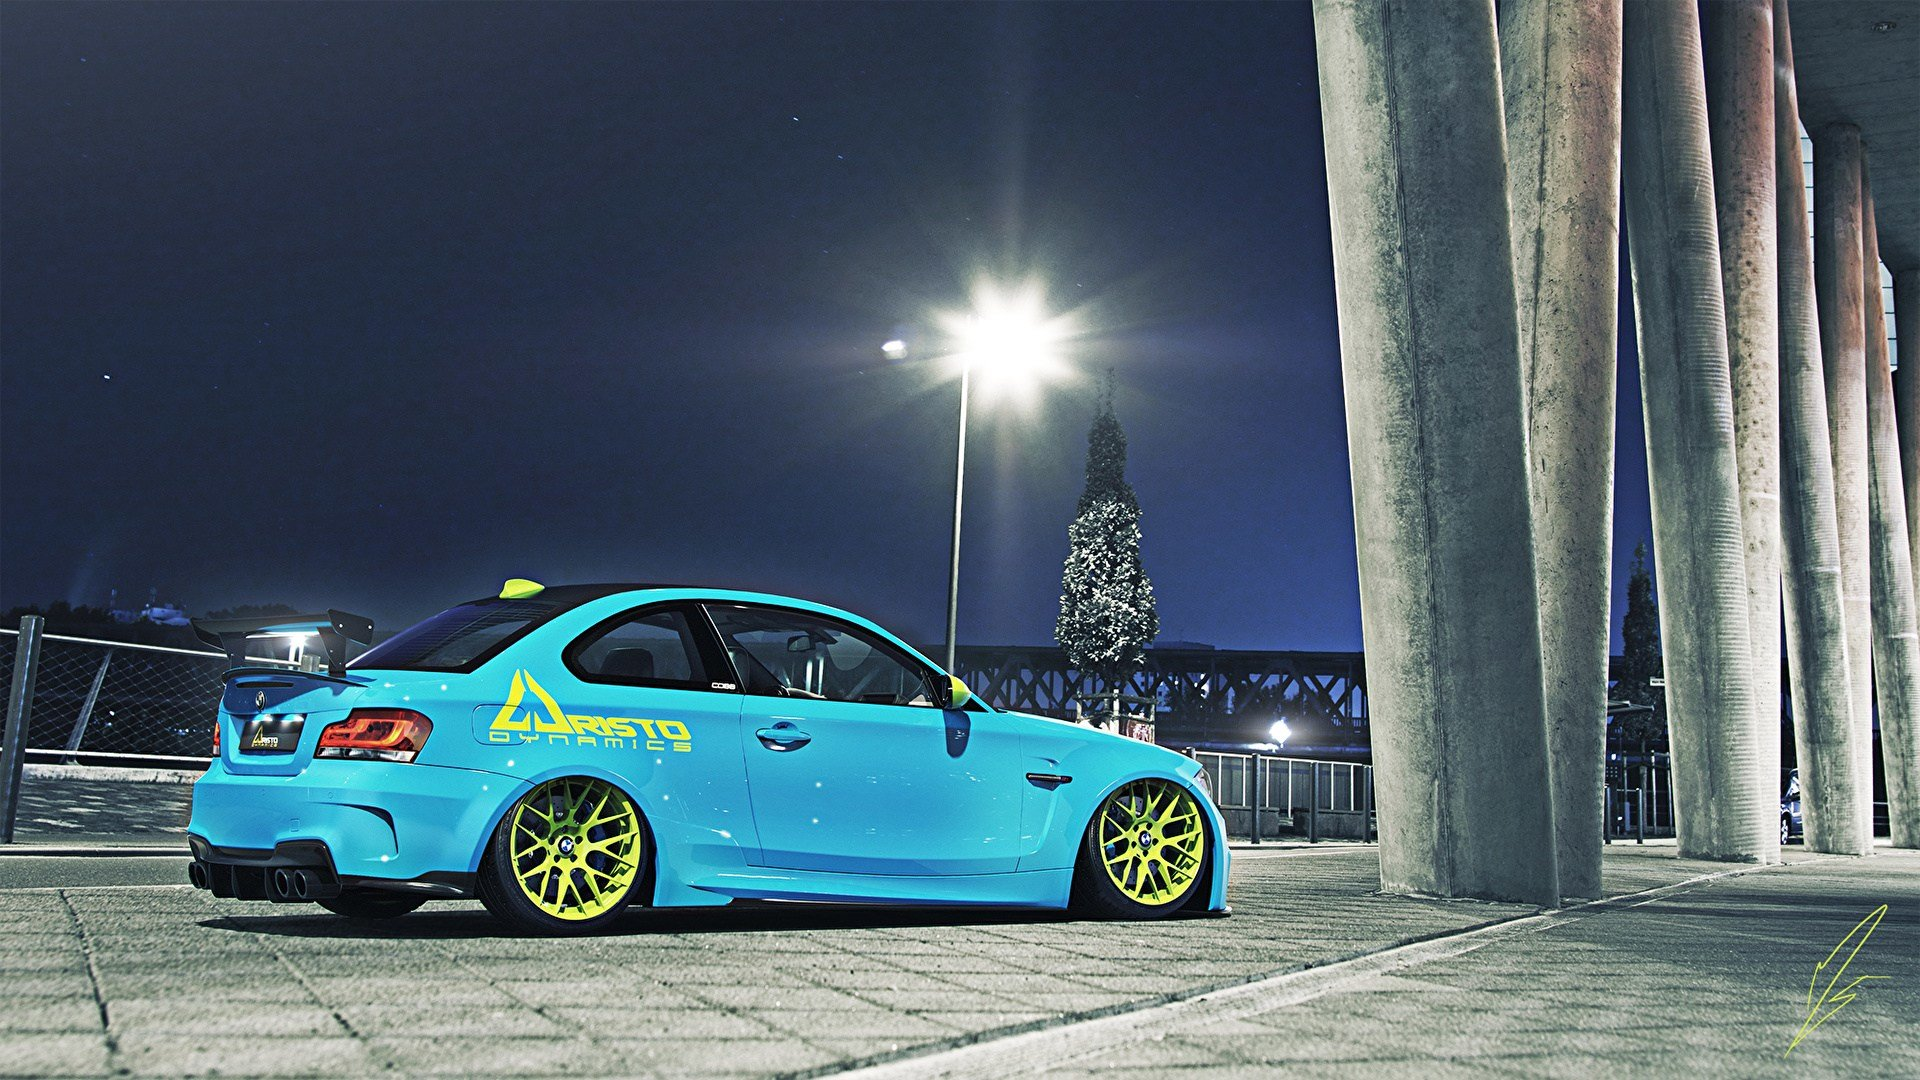 Latest Picture Bmw Tuning 1M Light Blue Automobile 1920X1080 Free Download